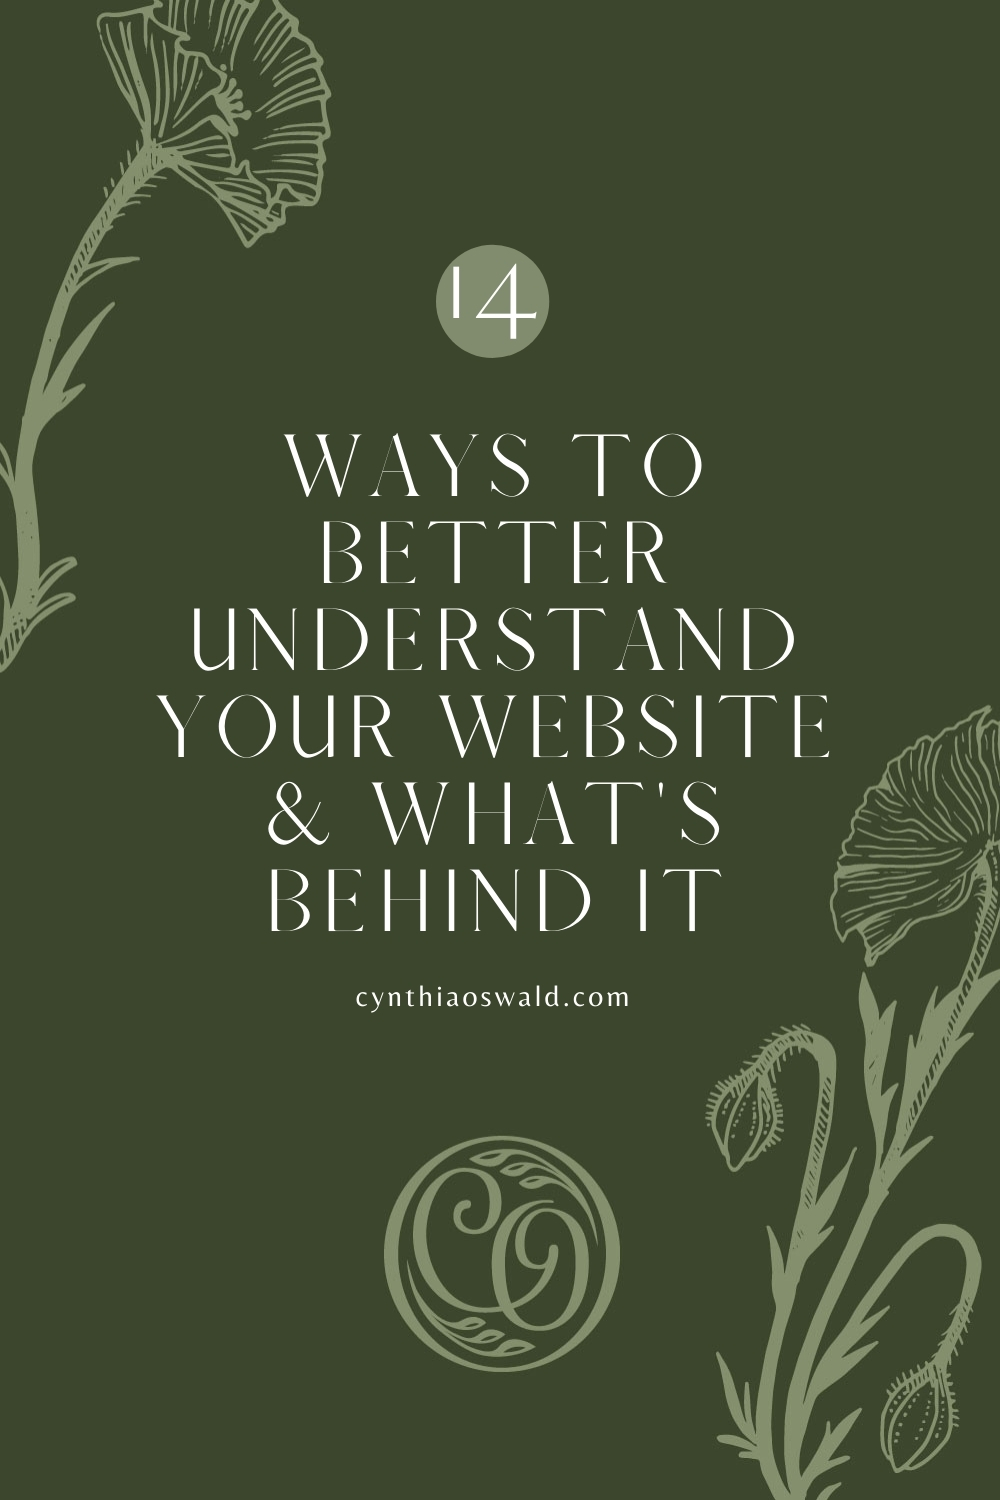 Better Understand Your Website and What's Behind It